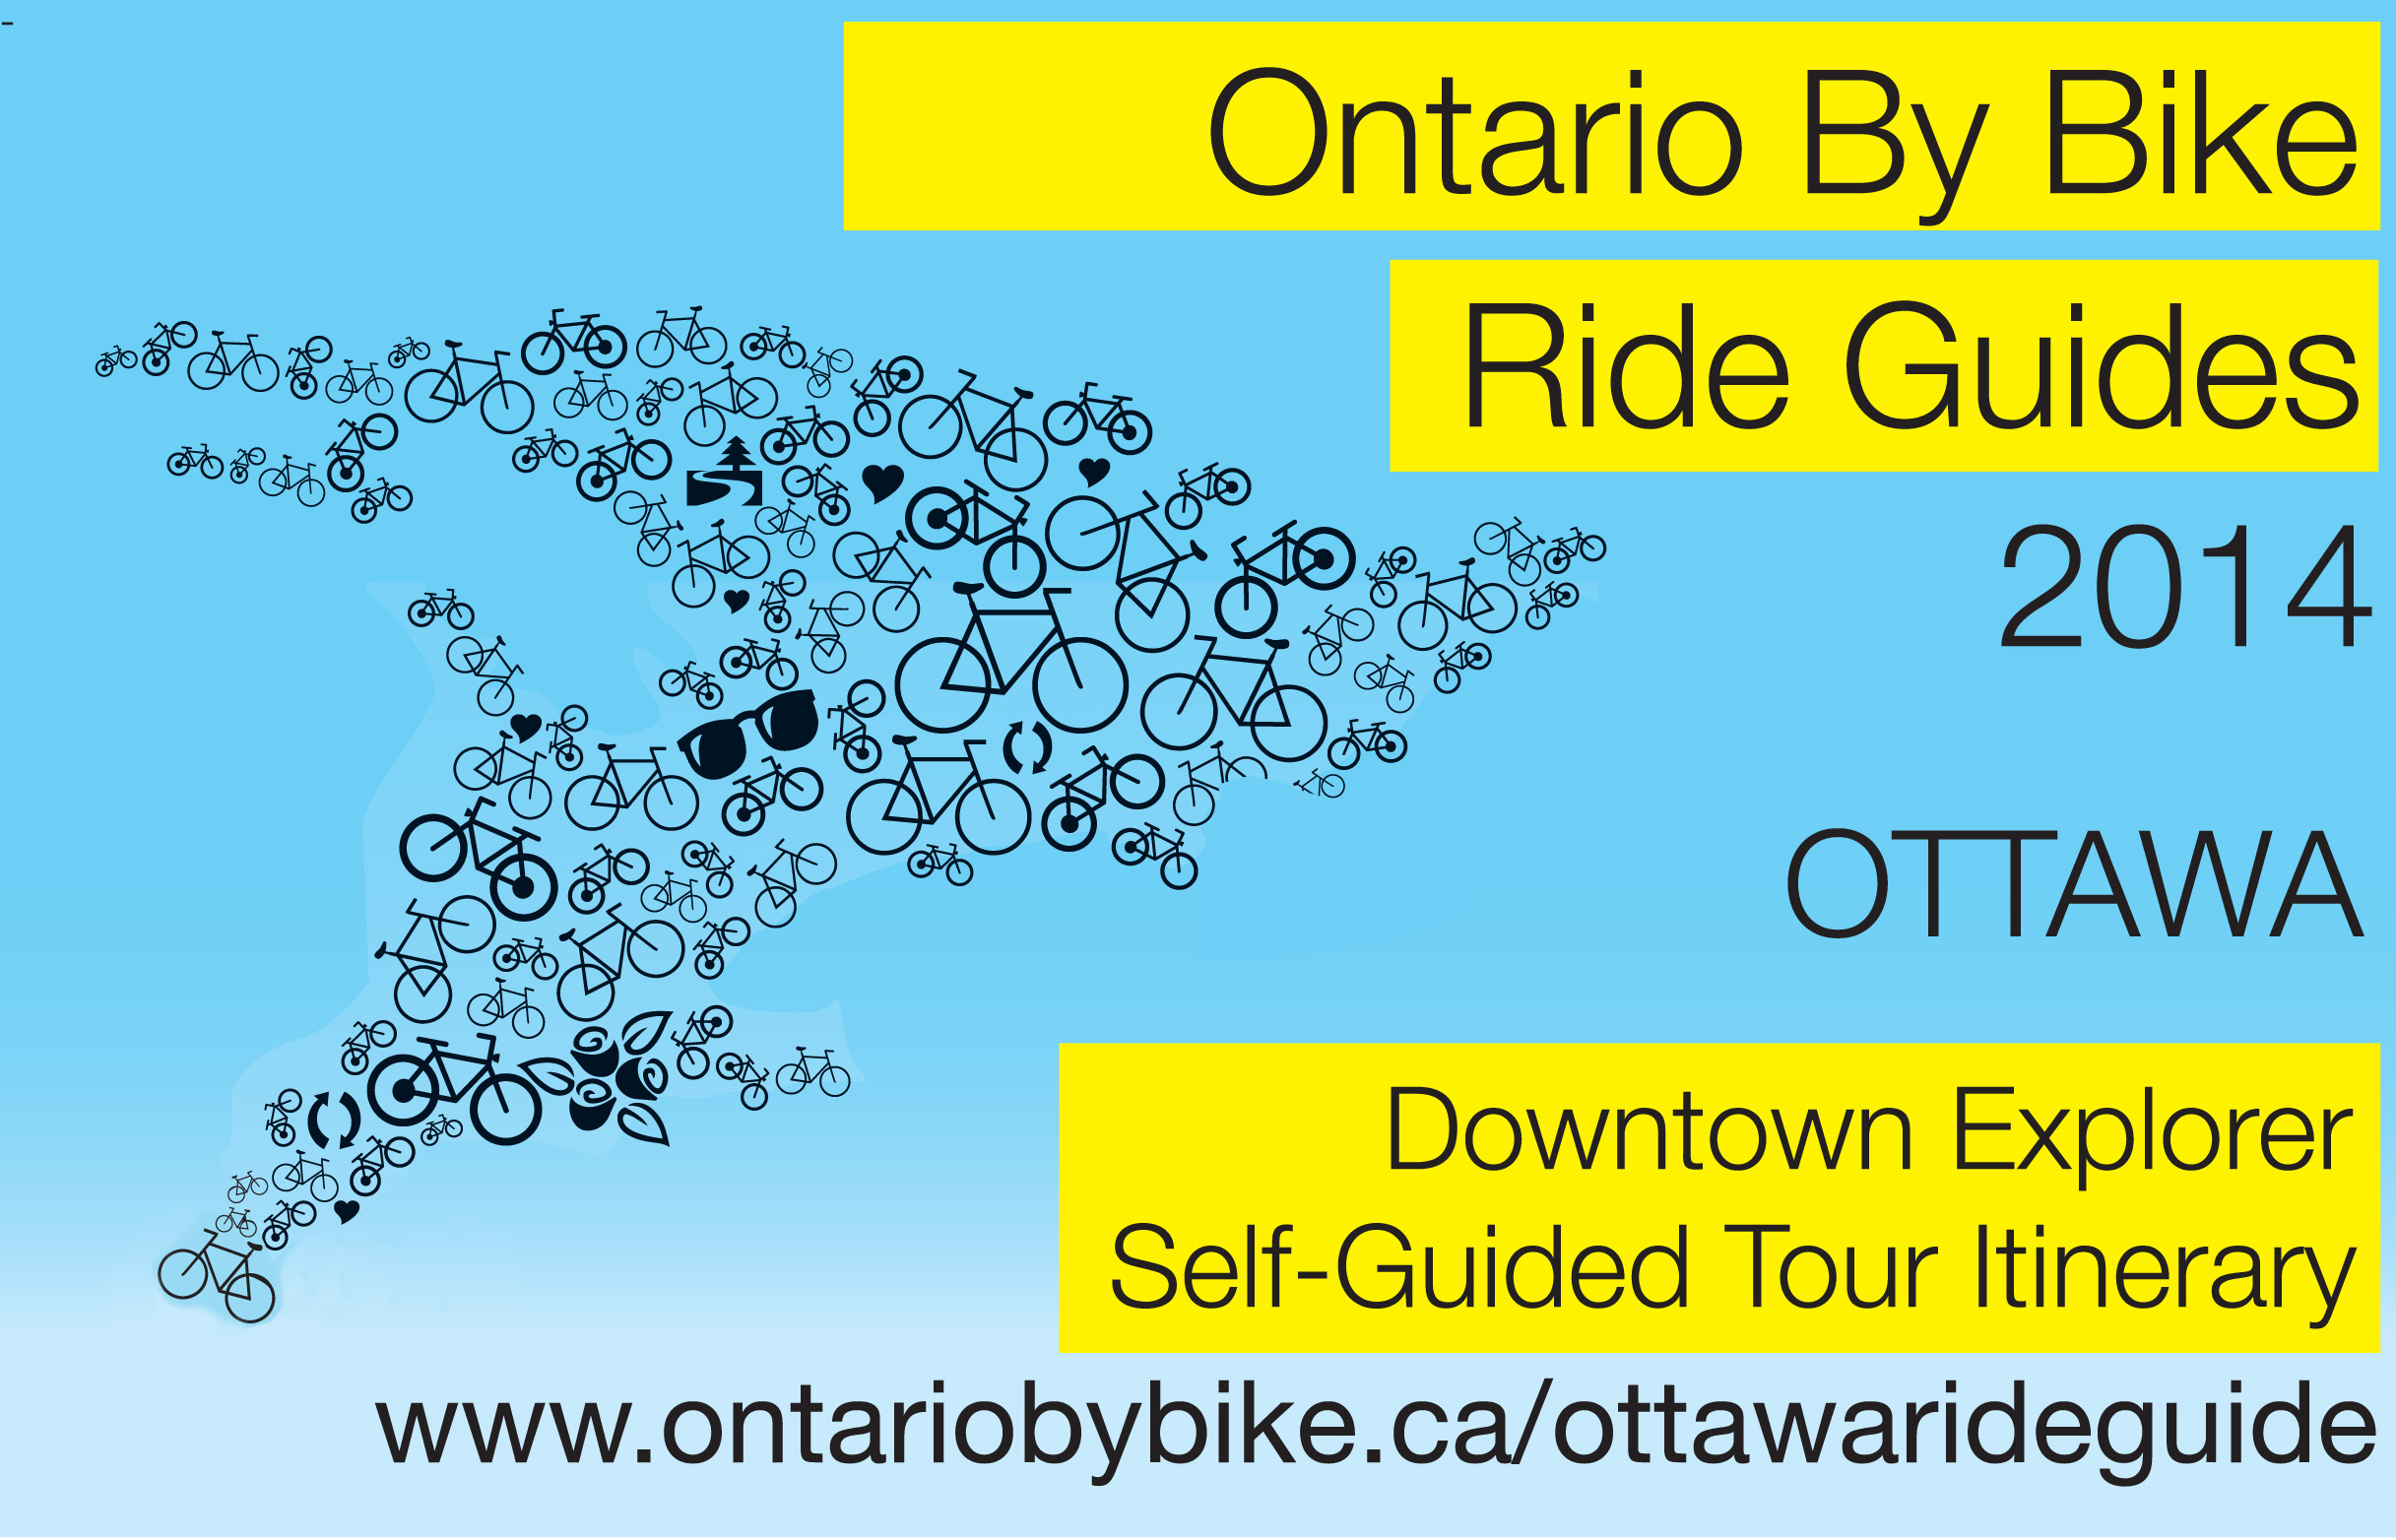 Ride Guide 2014 BlueOTTAWA - Post Launch